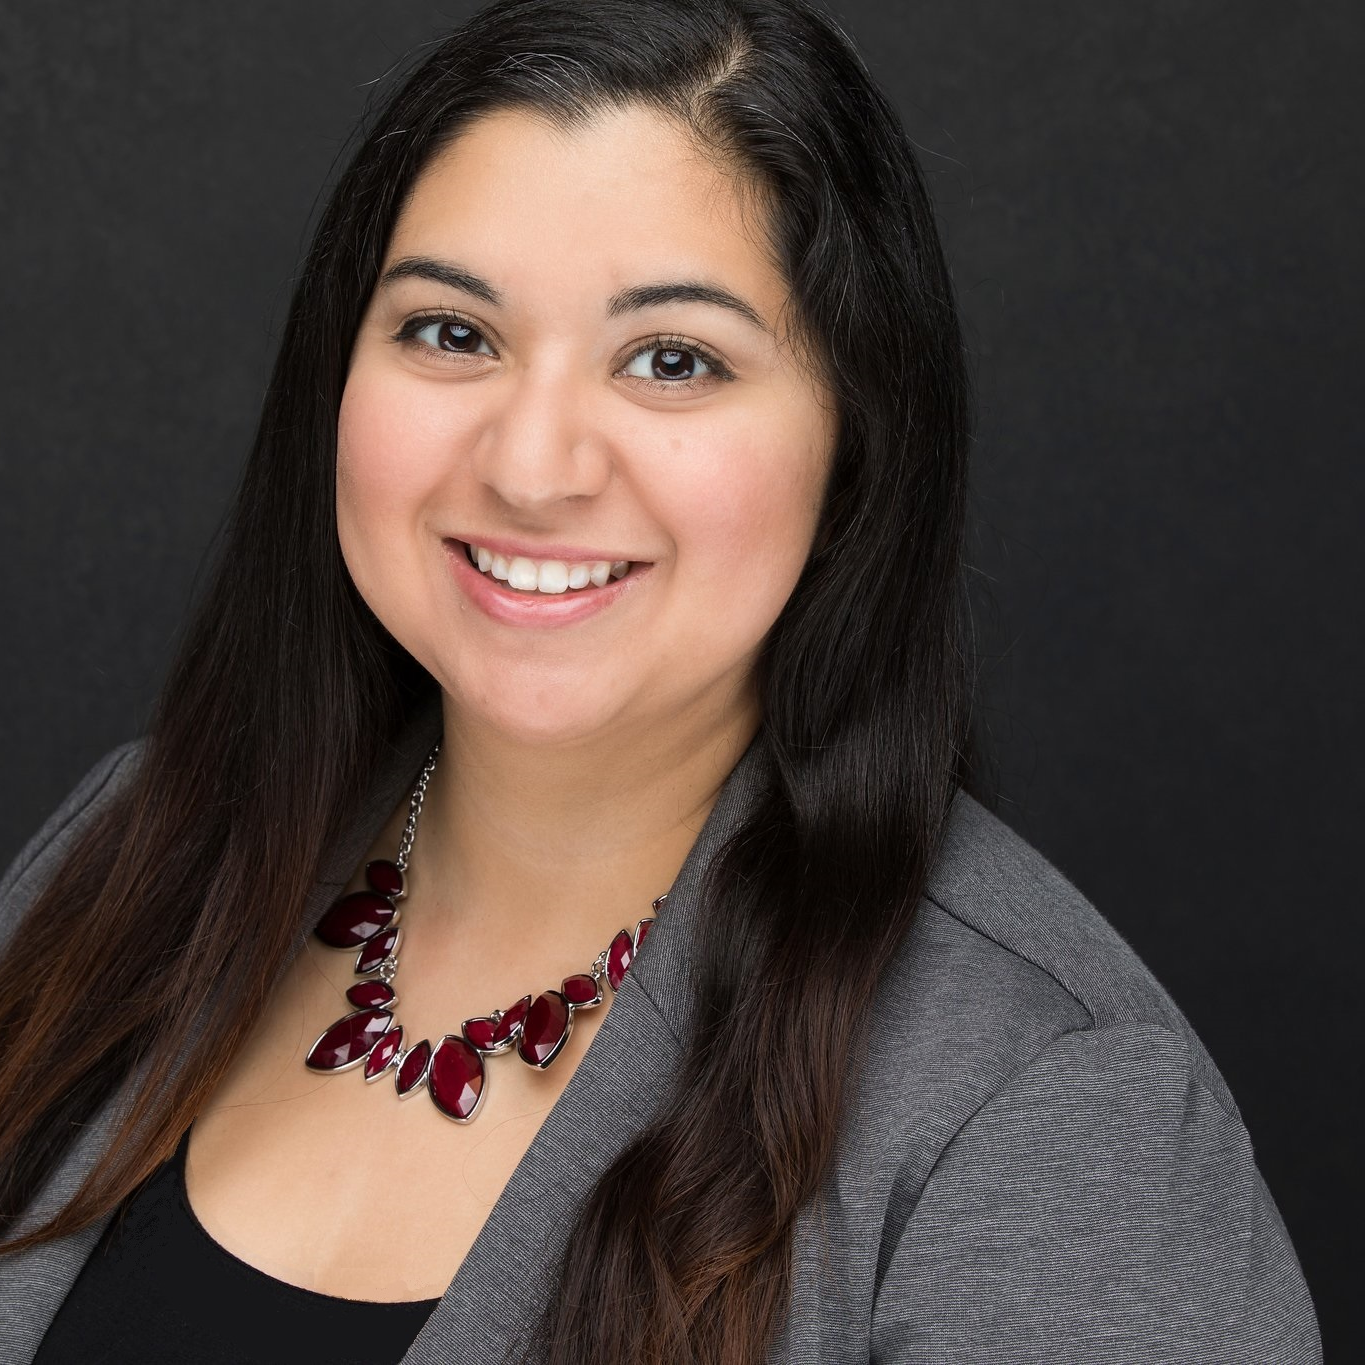 Laura Gonzalez - Co-Vice President & Director of Marketing